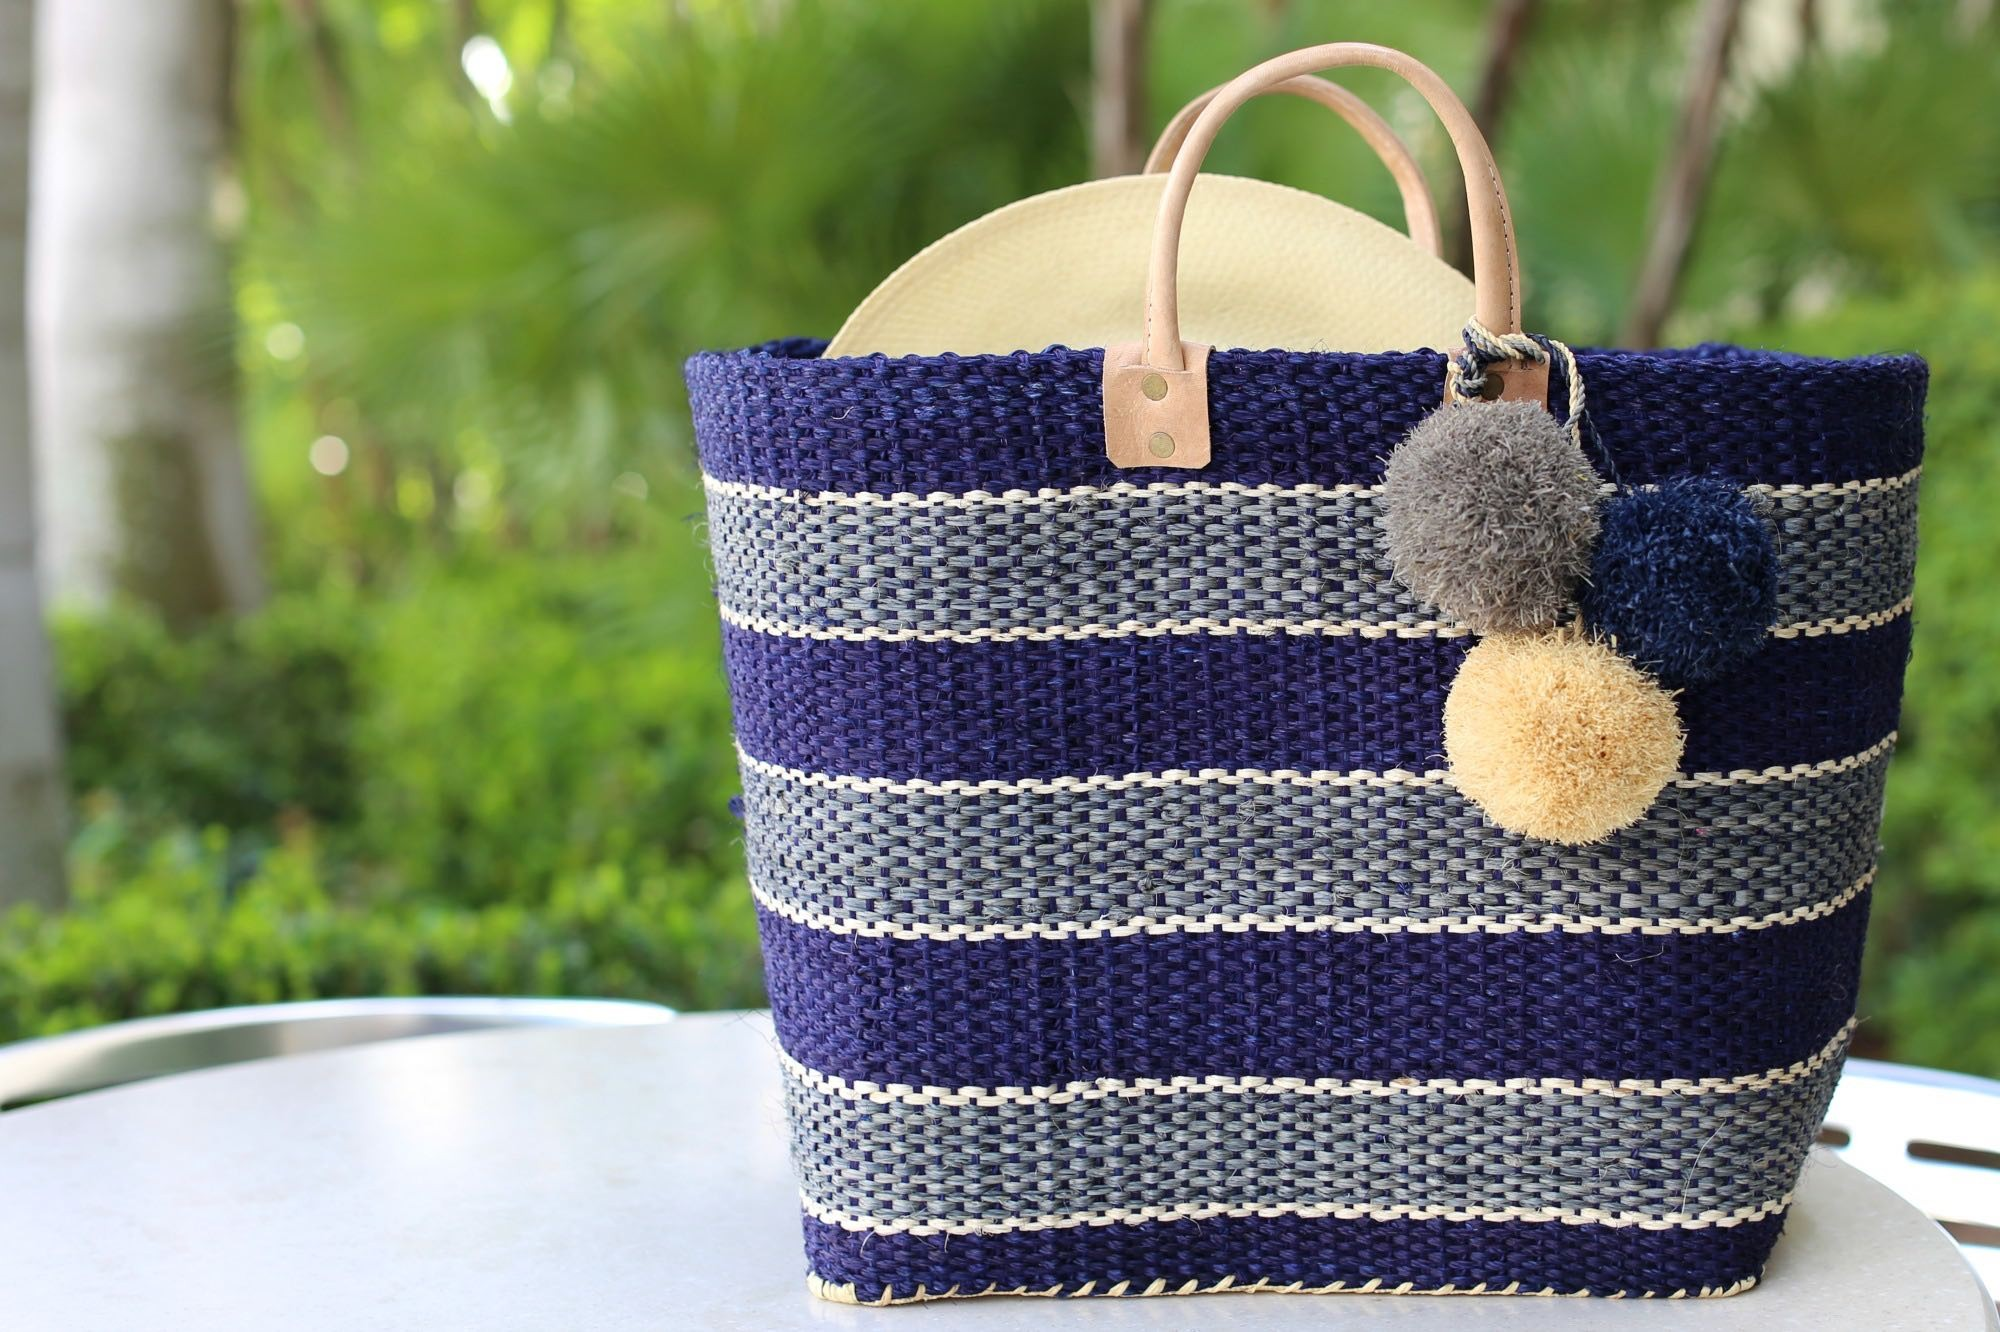 The Eco-Friendly Tote